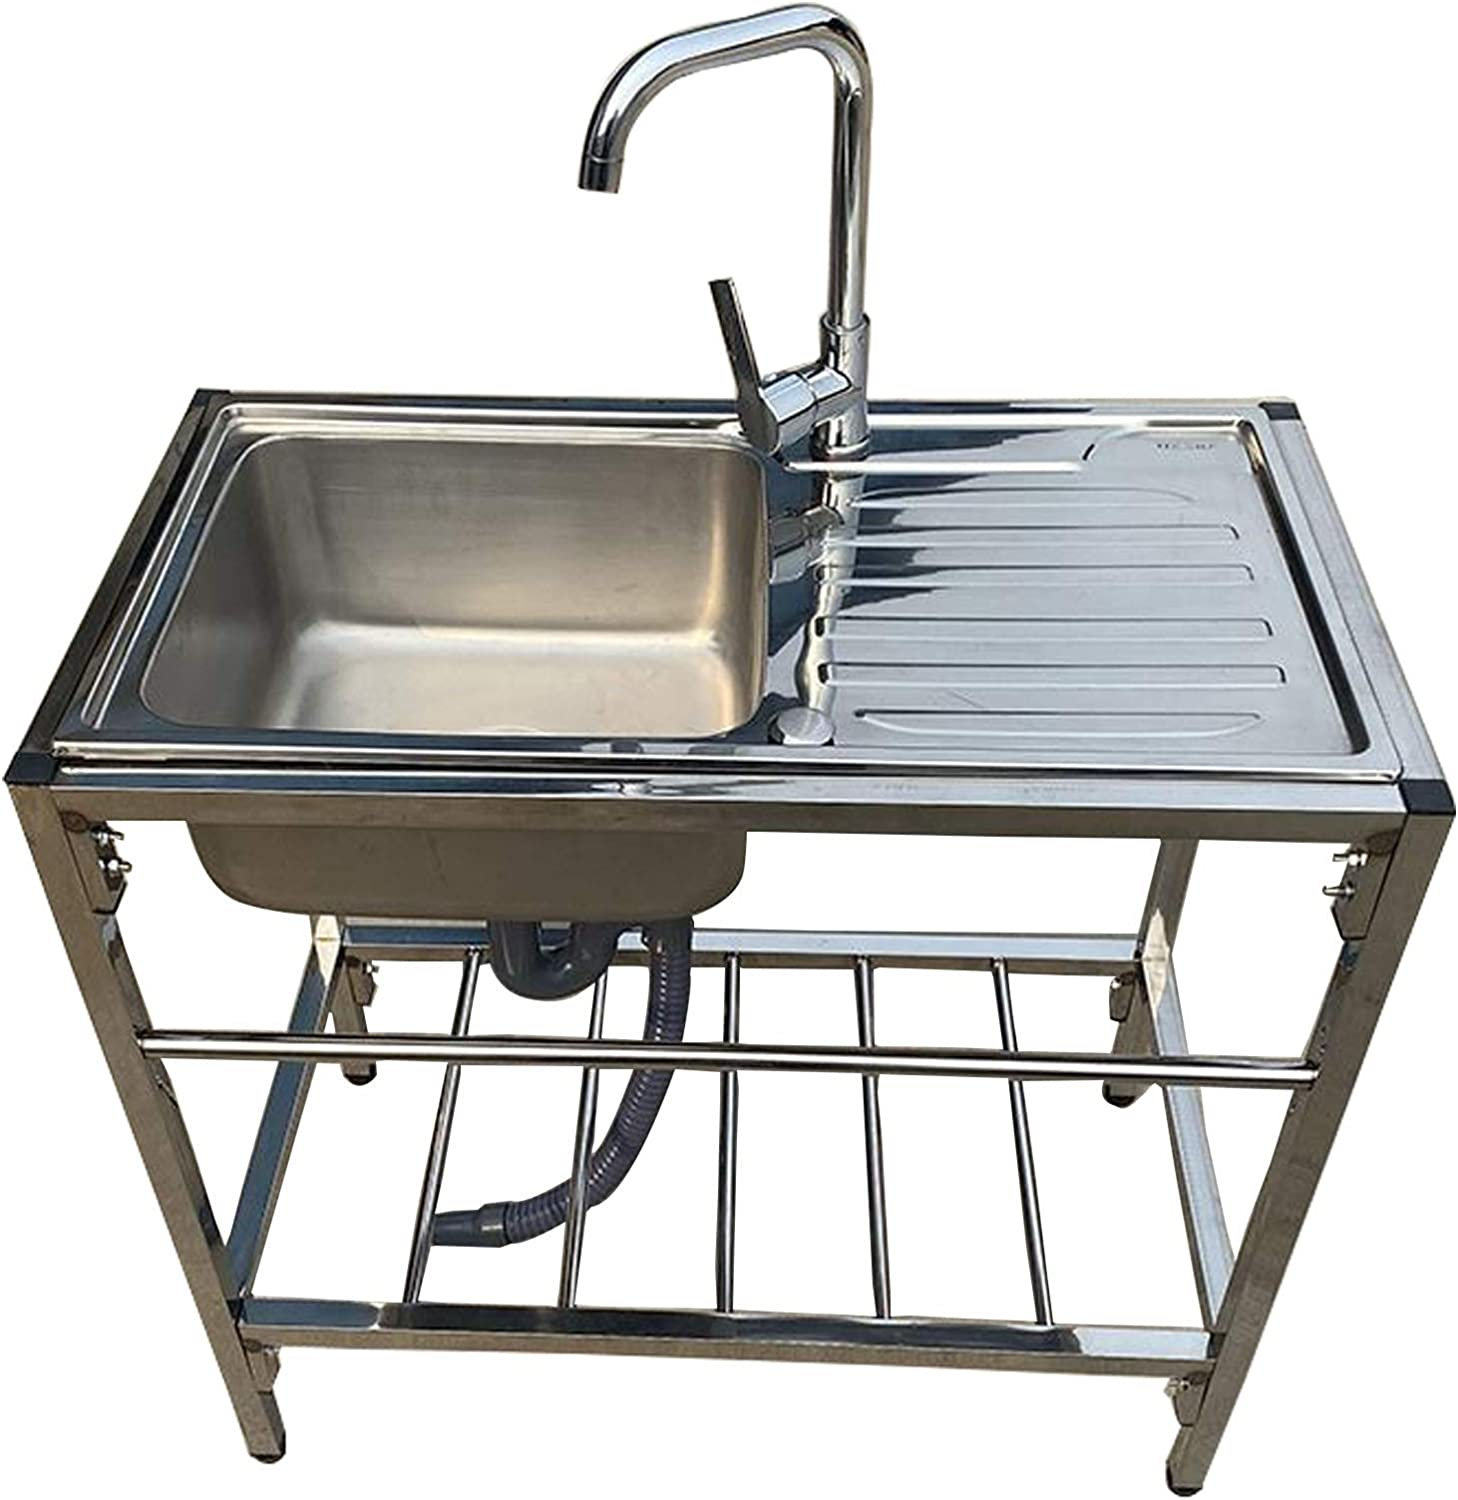 Cruise Tech Single Bowl Stainless Steel Kitchen Sink Laundry Under// Top Mount Sink W// Waste